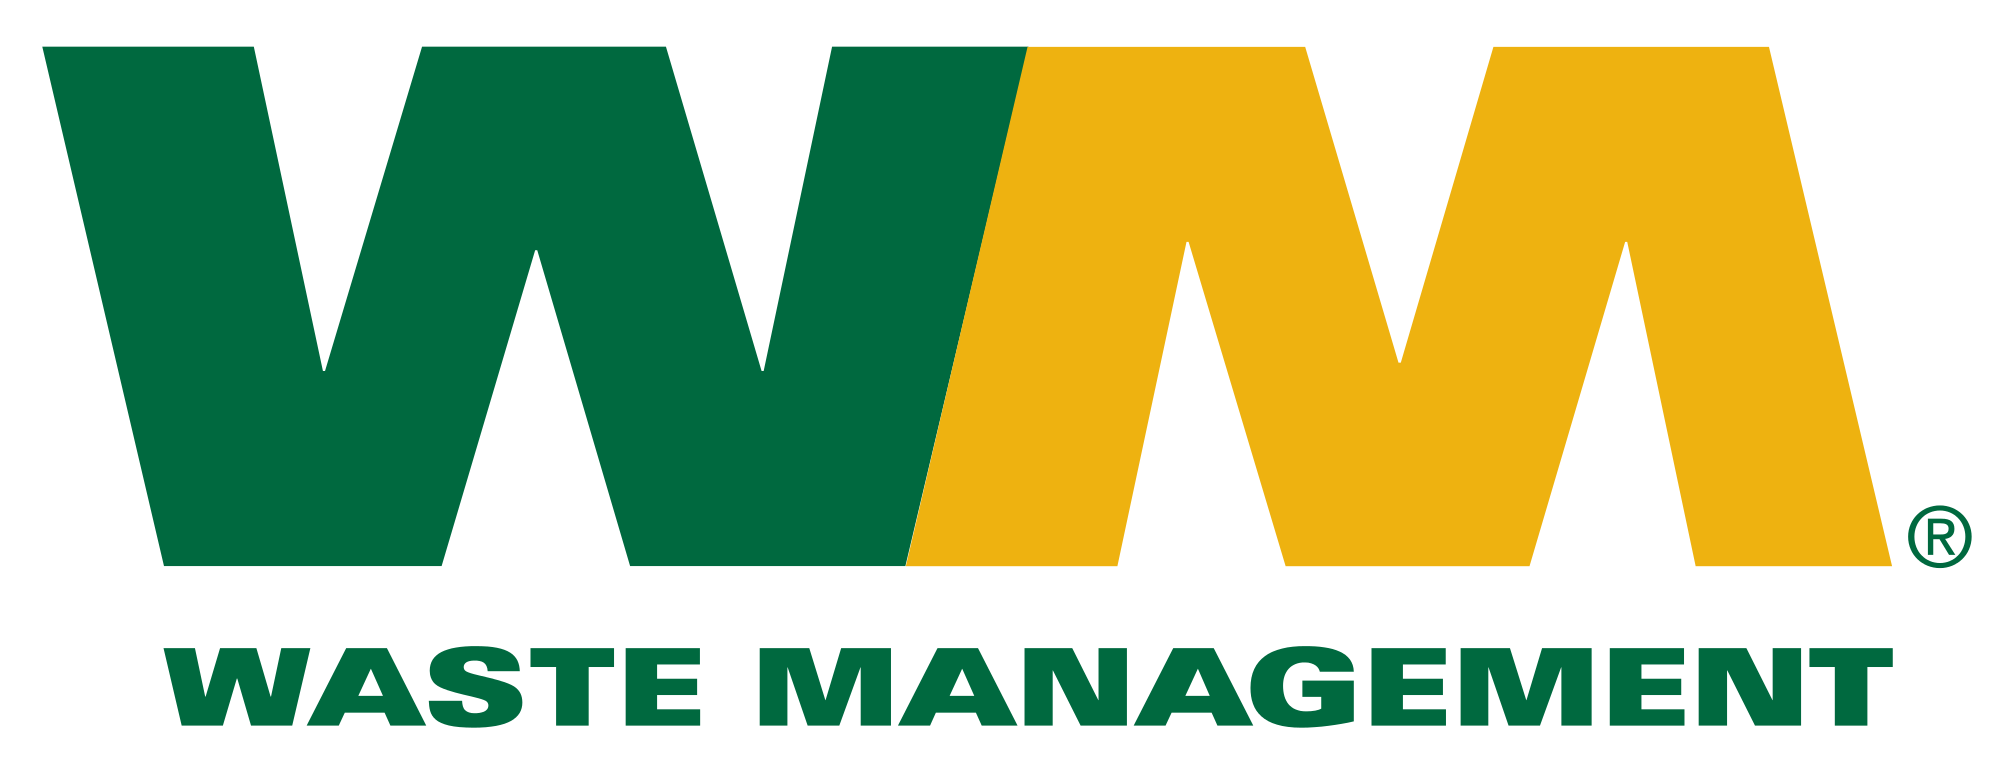 Waste Management of Mn Logo | City of Vergas Business Directory